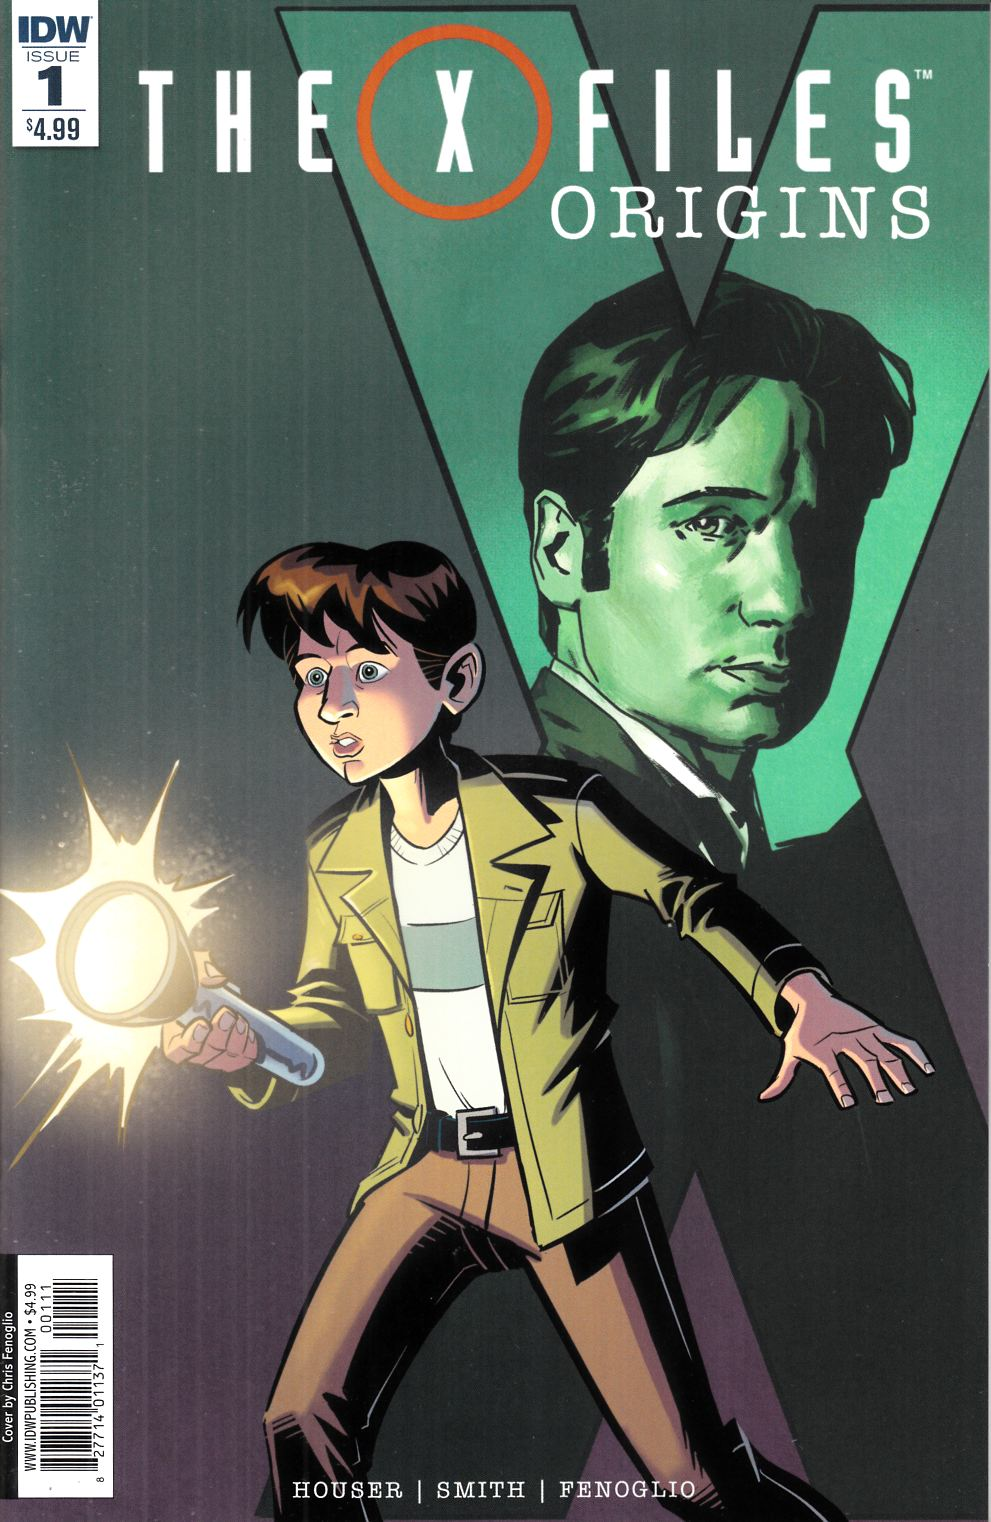 X-Files Origins #1 [IDW Comic] THUMBNAIL